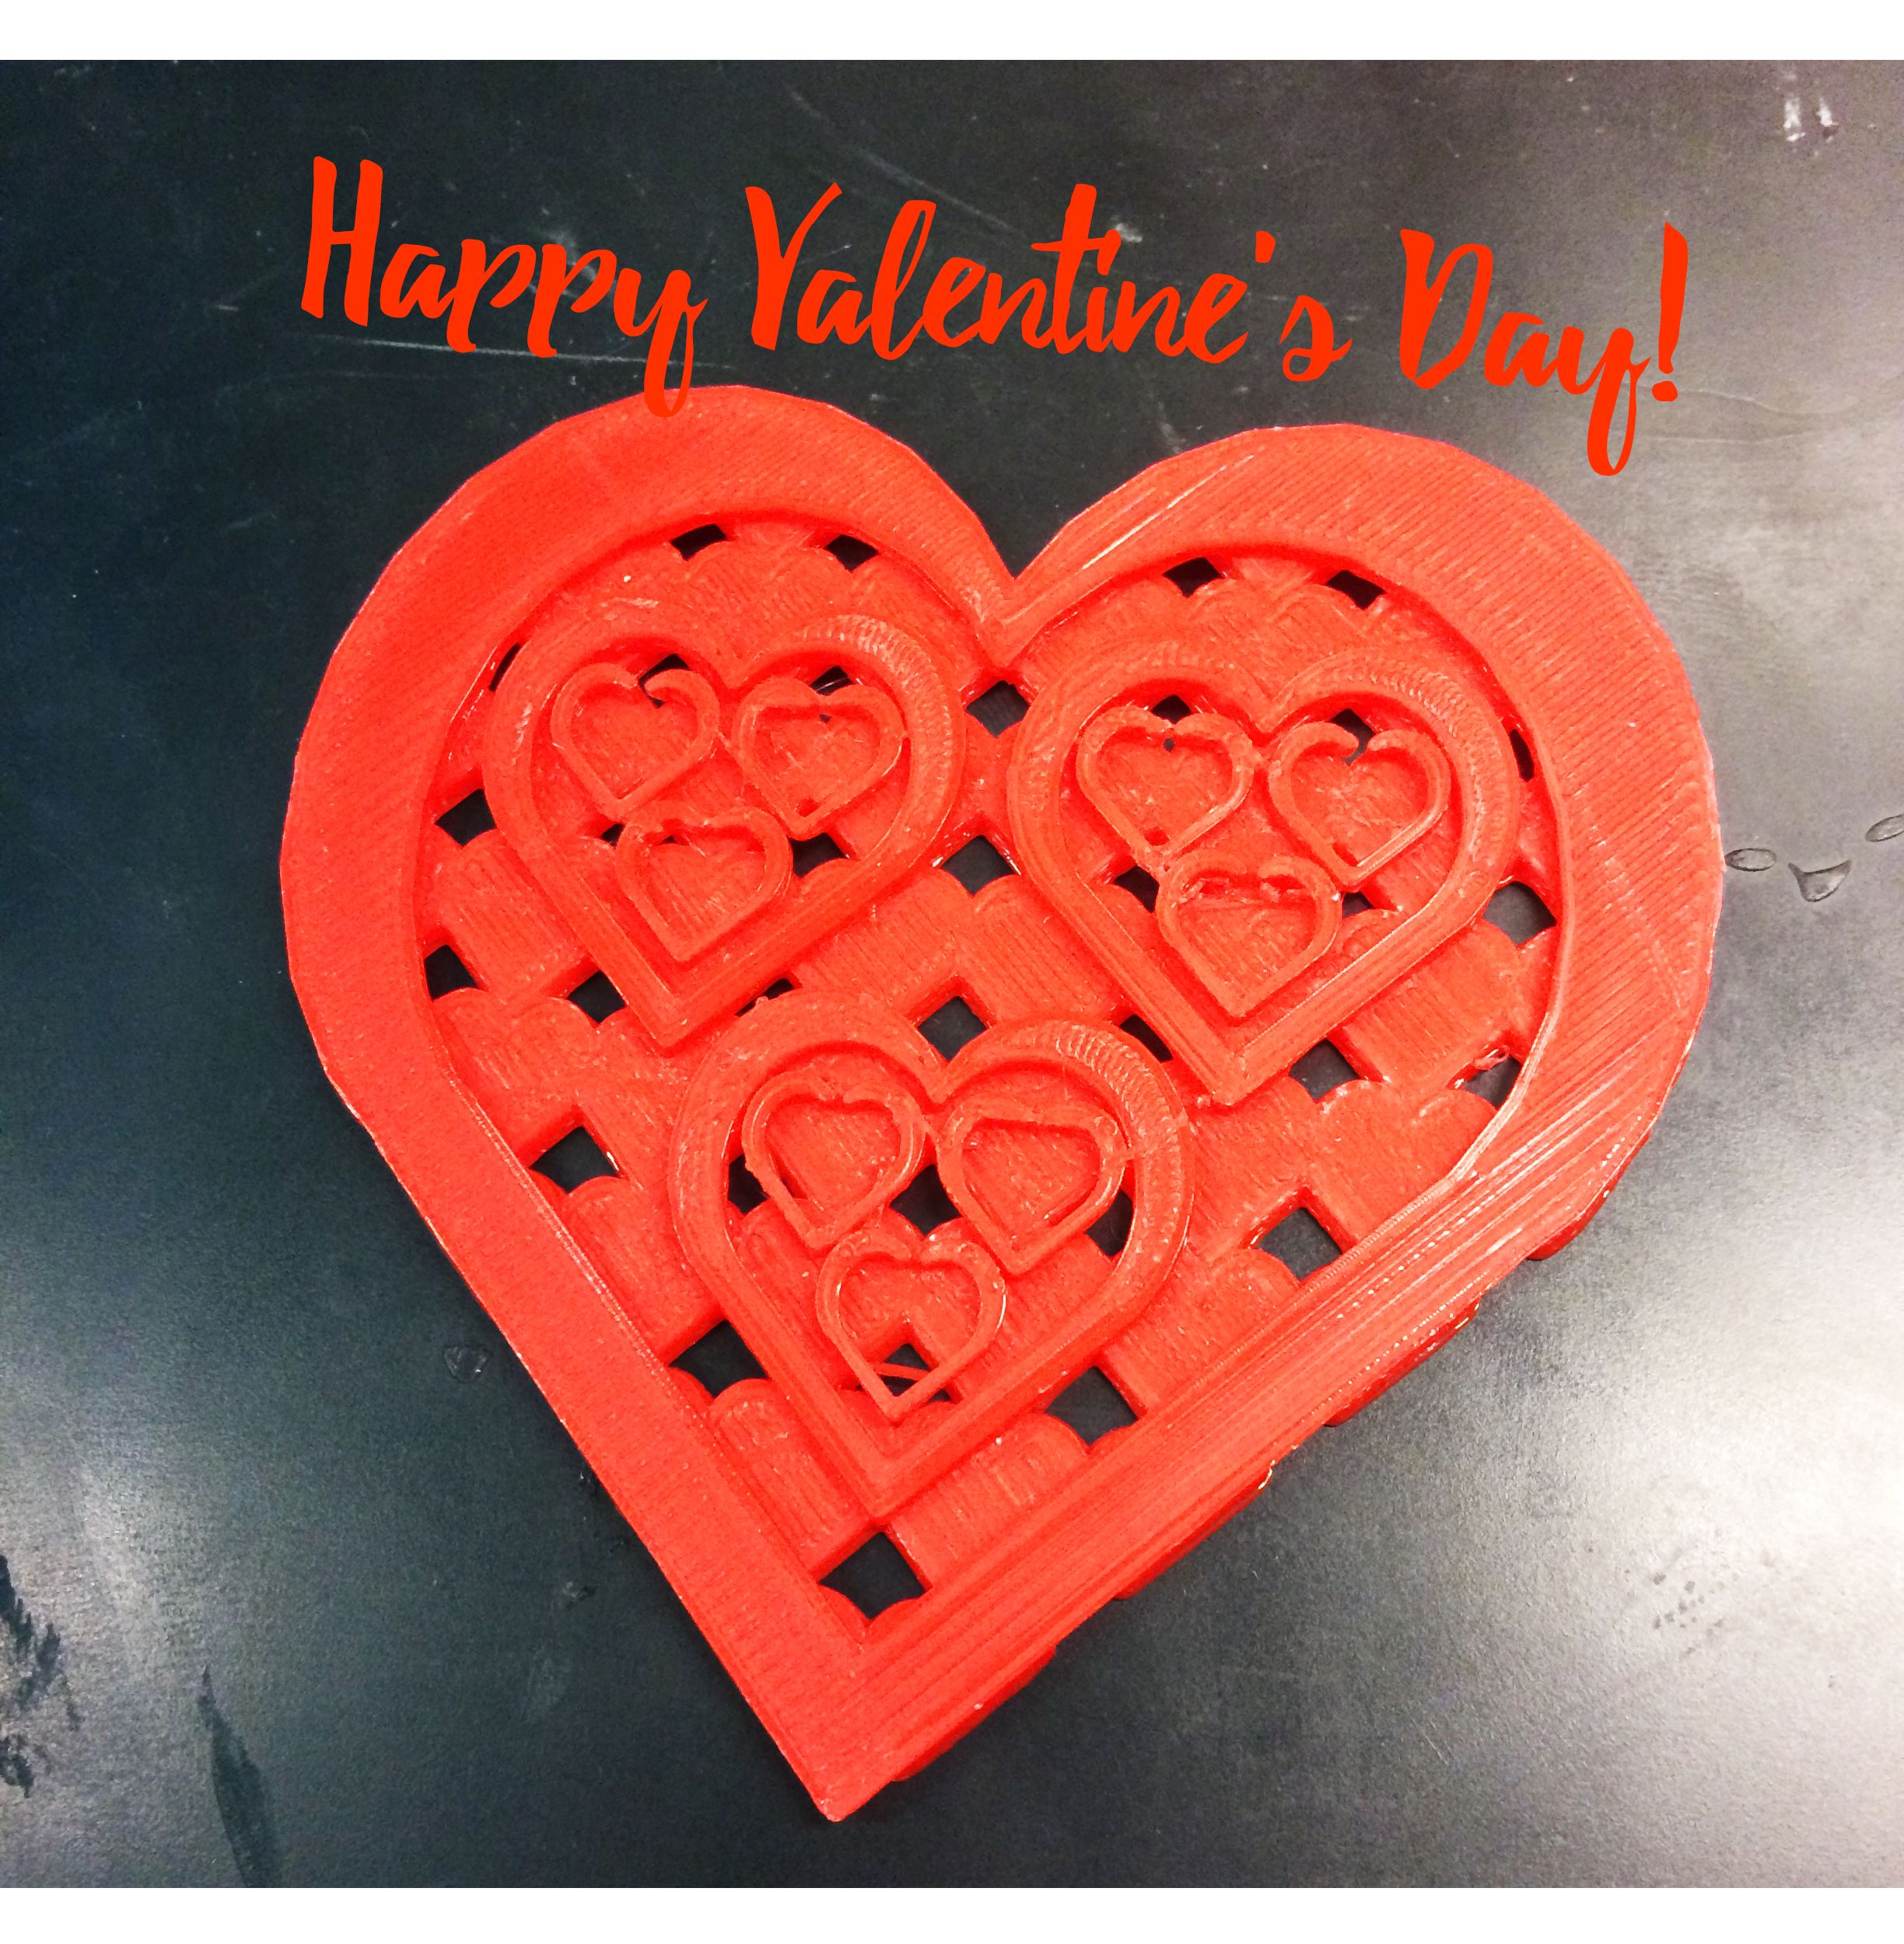 Happy Valentine S Day From All Of Us At Tactile Picture Books Project Lab Pictured 3d Printed Heart Book Projects 3d Printed Heart Children S Picture Books